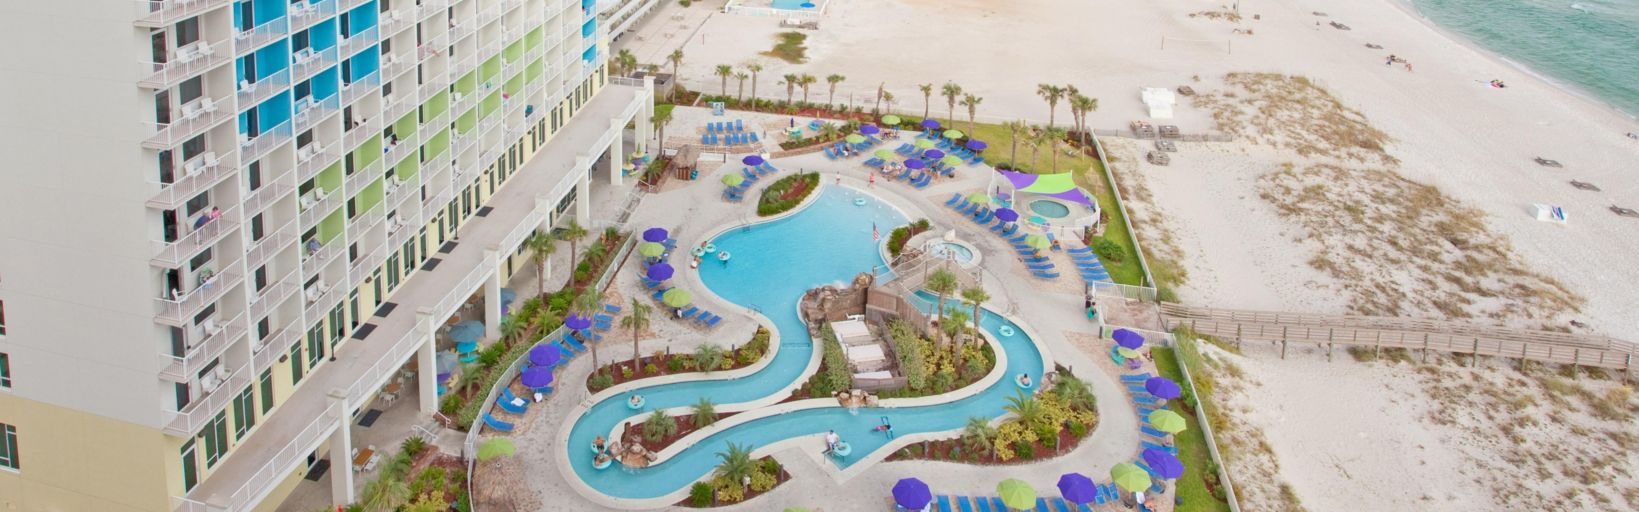 Holiday Inn Resort Pensacola Beach 39 S Heated Pool And